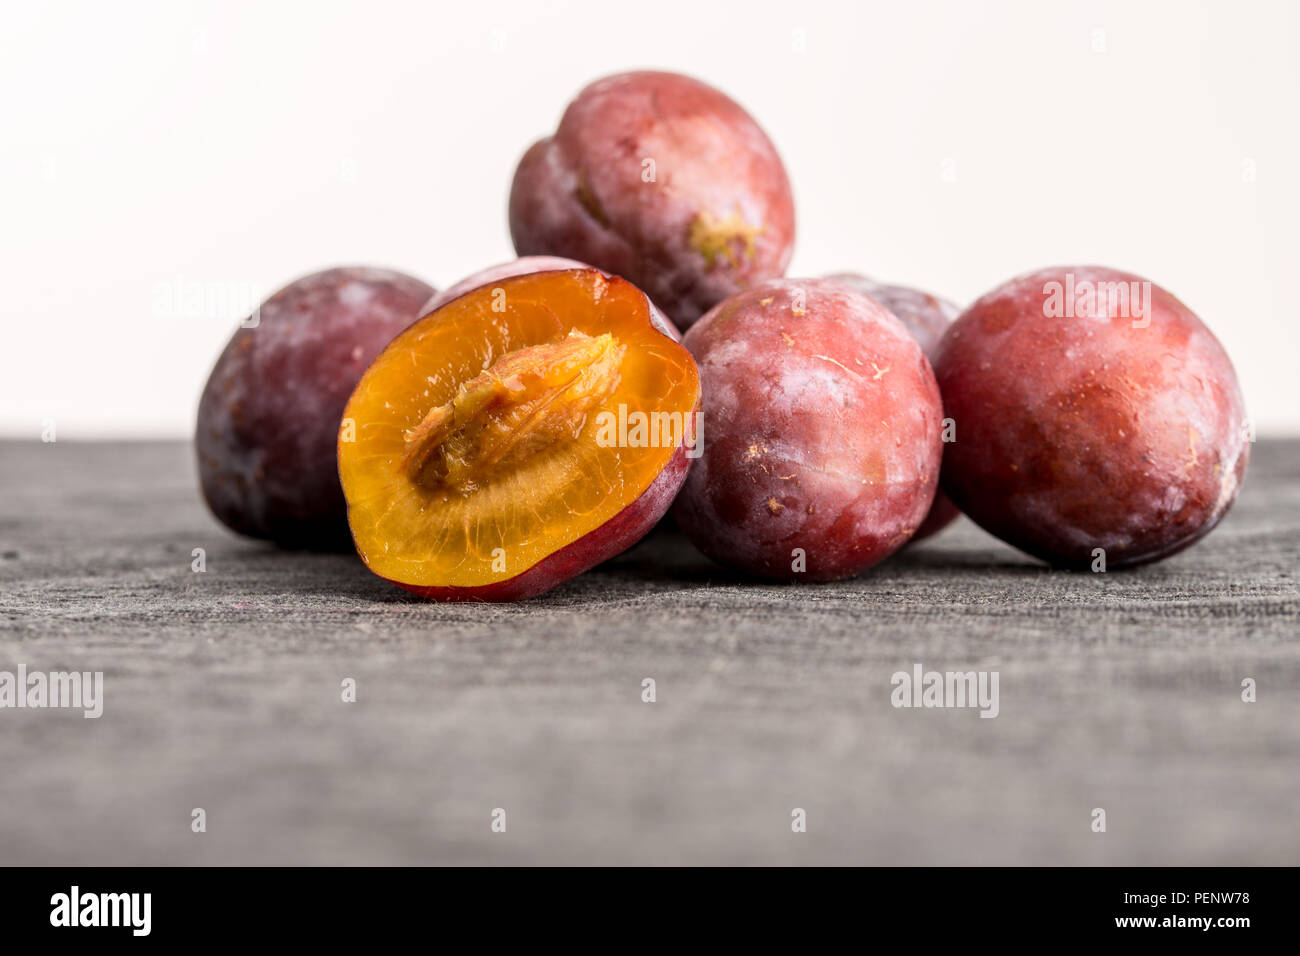 Heap of whole fresh plums with one halved one balanced in front showing the juicy texture of the orange flesh and the stone or pip, low angle with cop Stock Photo